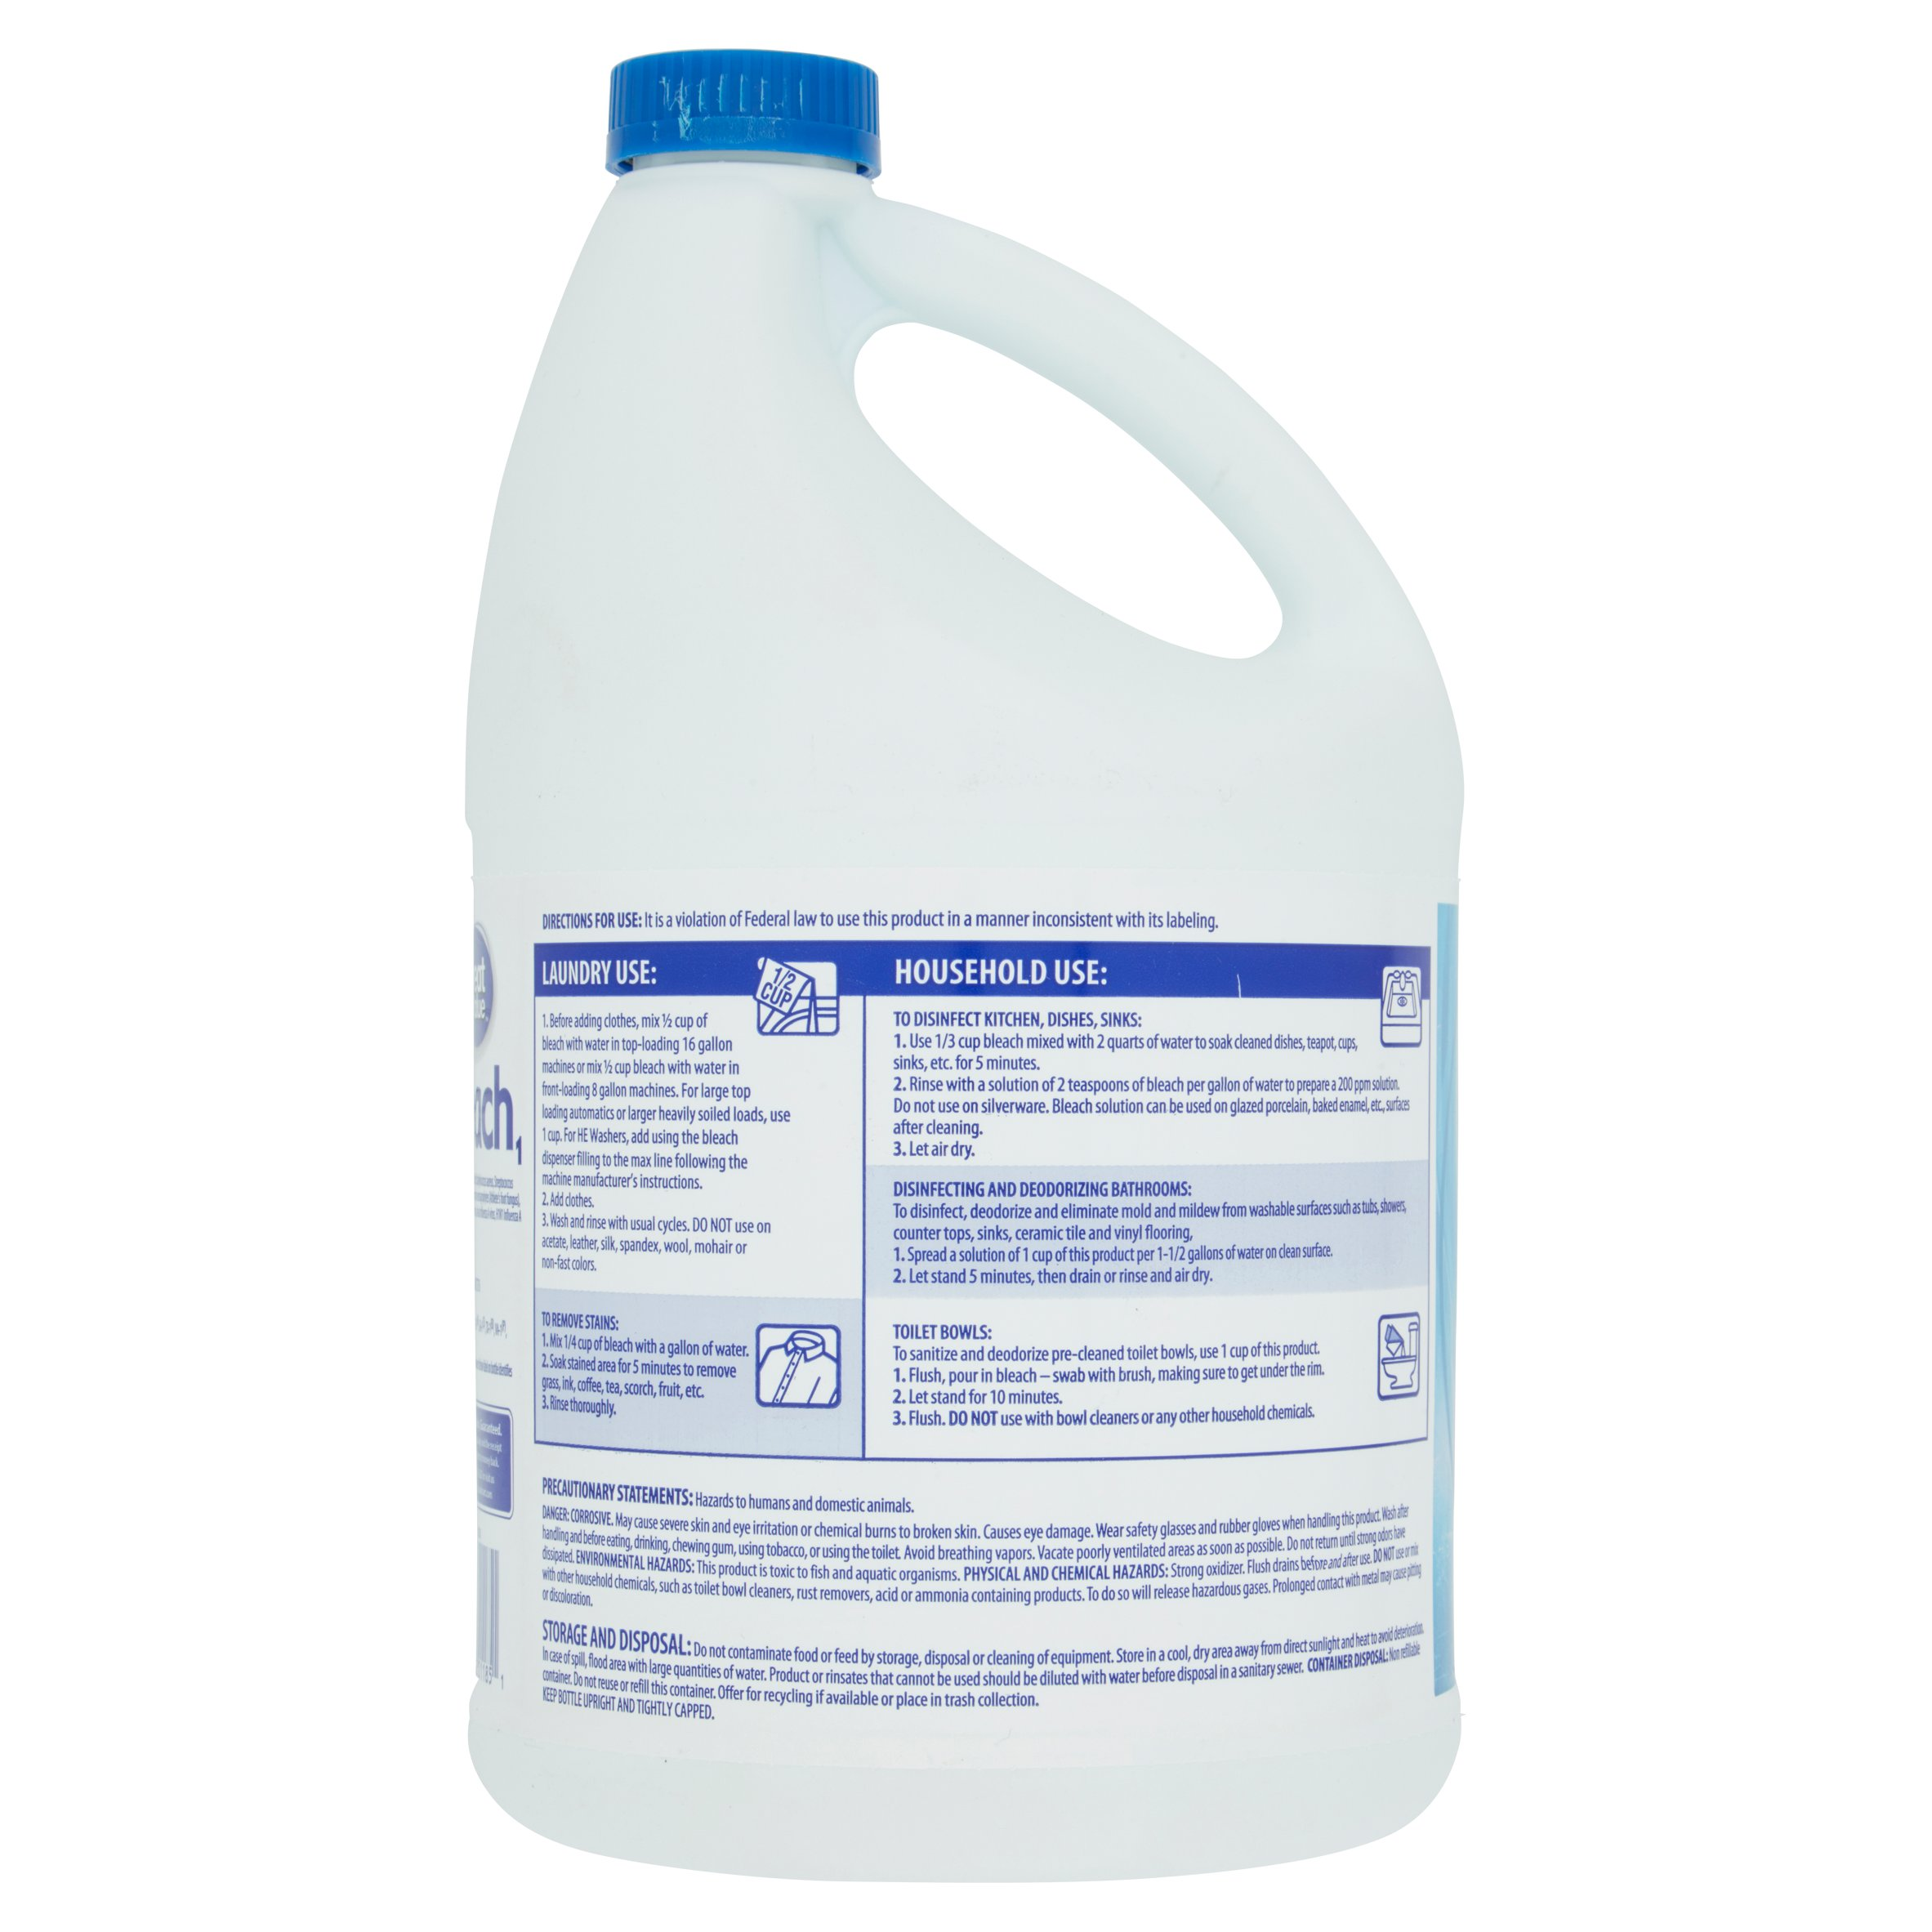 Bleach Does Kill Mold And Its Spores Therefore Would Be An Excellent Way To Treat Problems In The Home